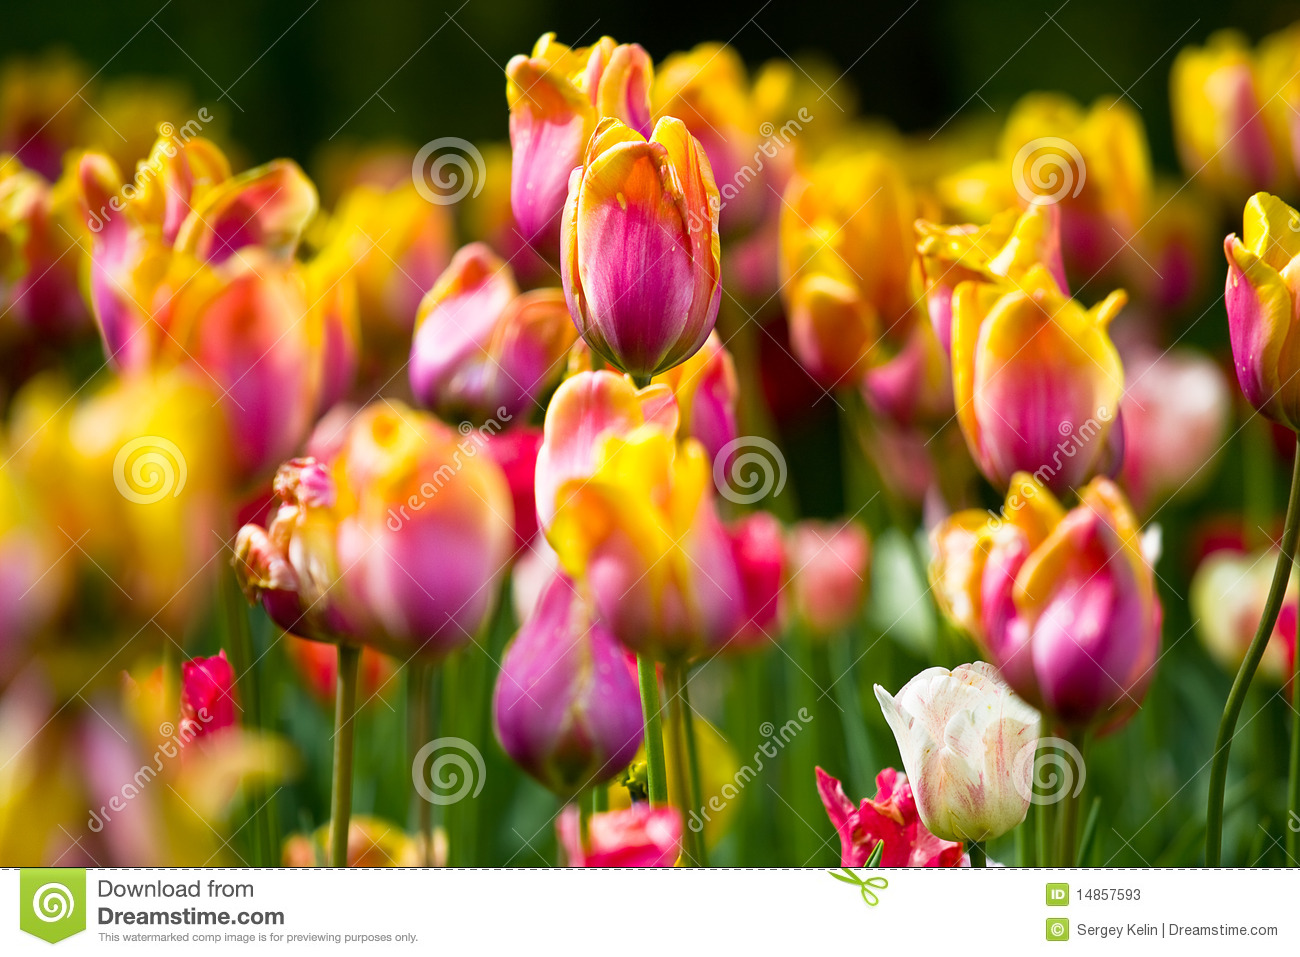 Sea of colorful tulips